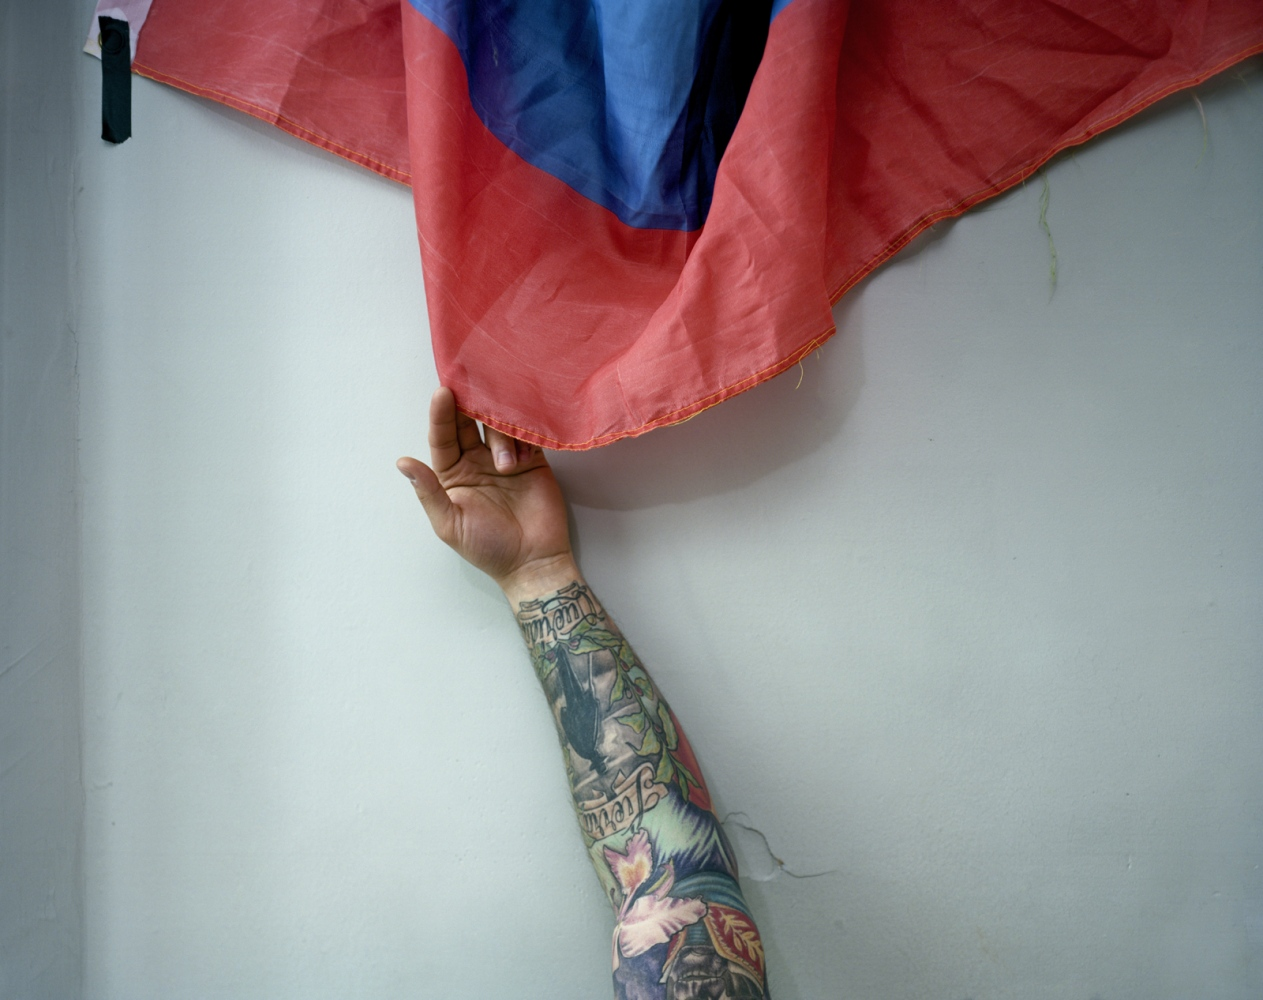 Luis' Arm with Flag/Puro Colombia, Paterson, NJ , 2014